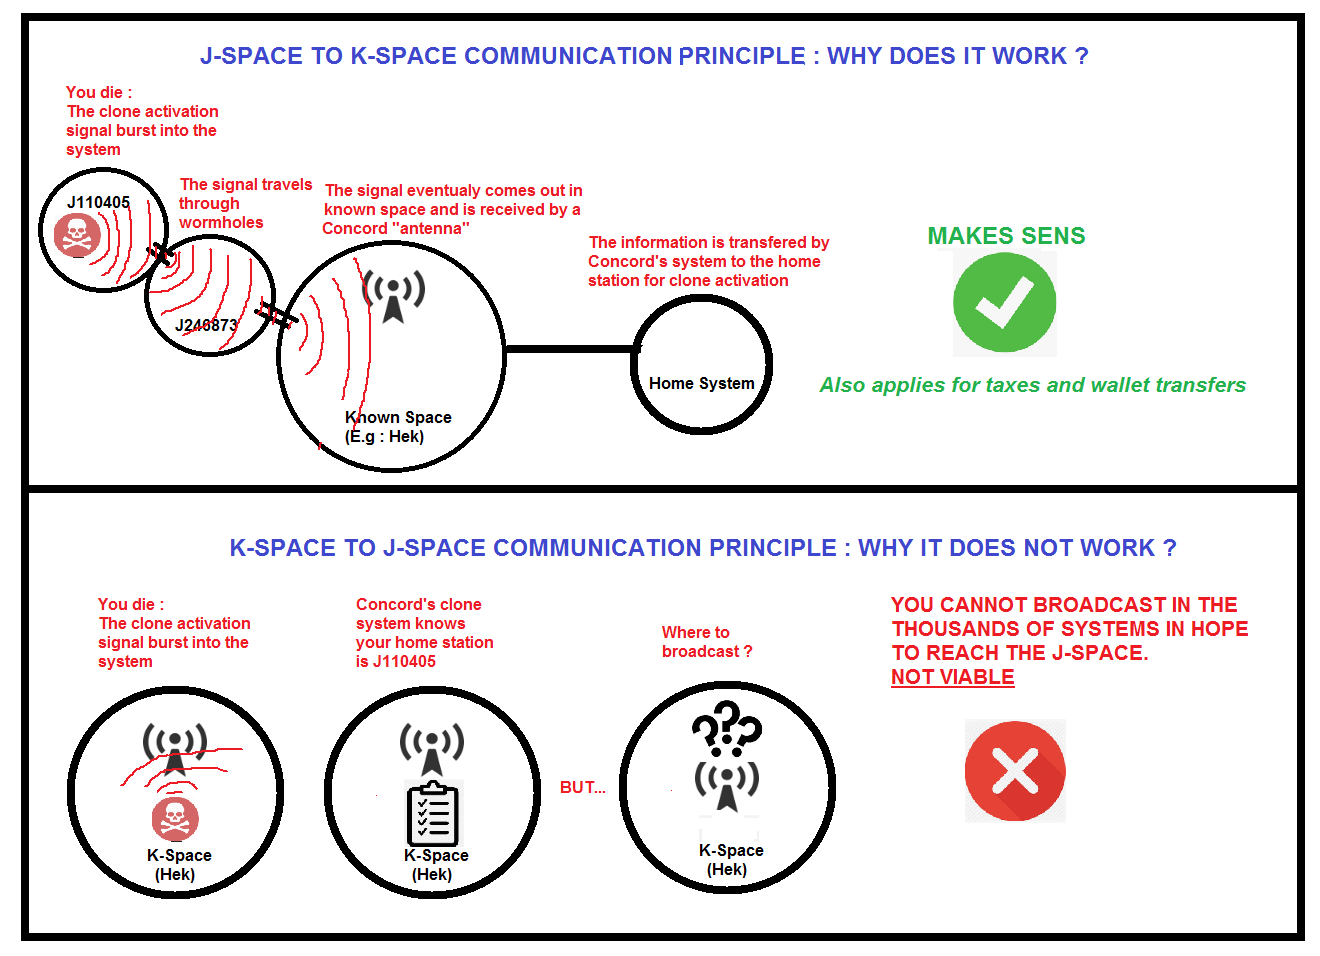 But Sens J Space Mechanics Badly Drawn Does It Make Sens Eve